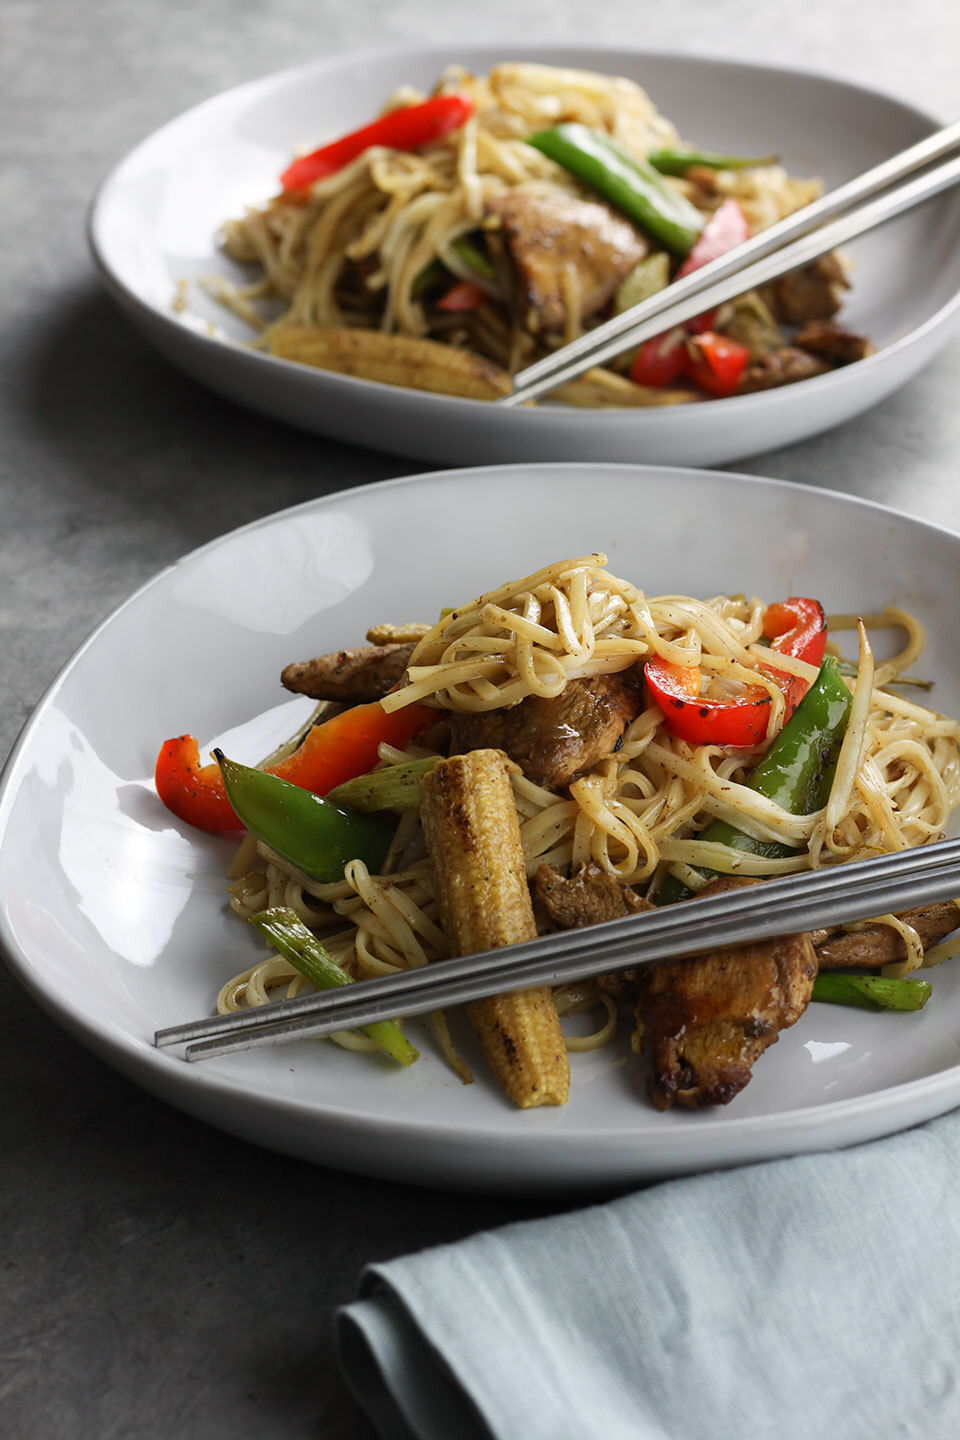 Easy Chicken Noodle Stir Fry